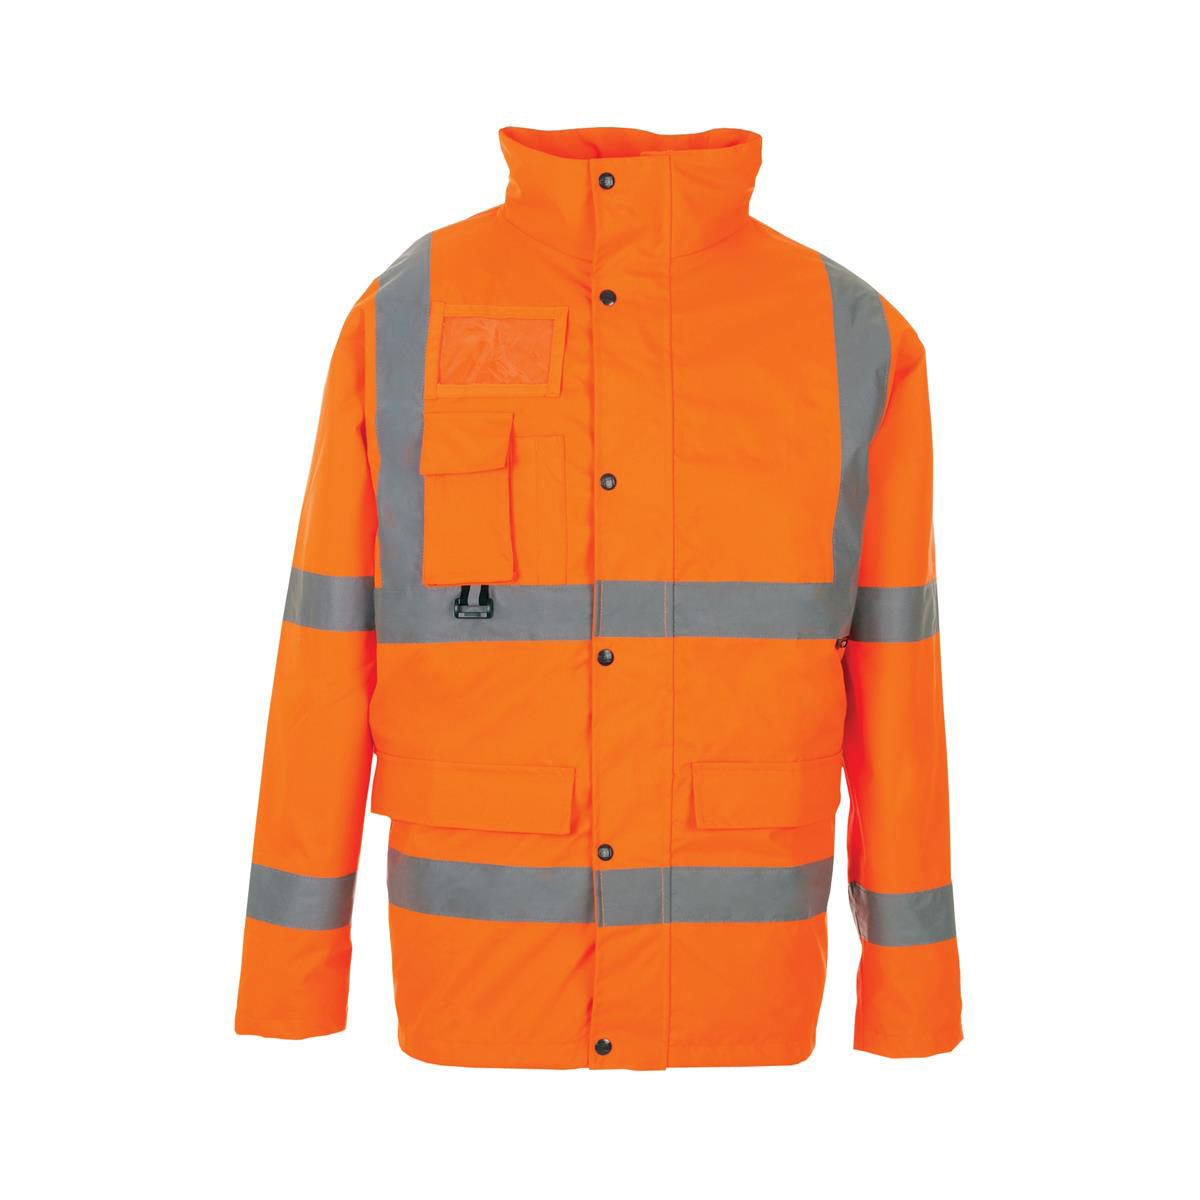 High Visibility Breathable Jacket Multifunctional 2XL Orange Ref JJORXXL Approx 2/3 Day Leadtime